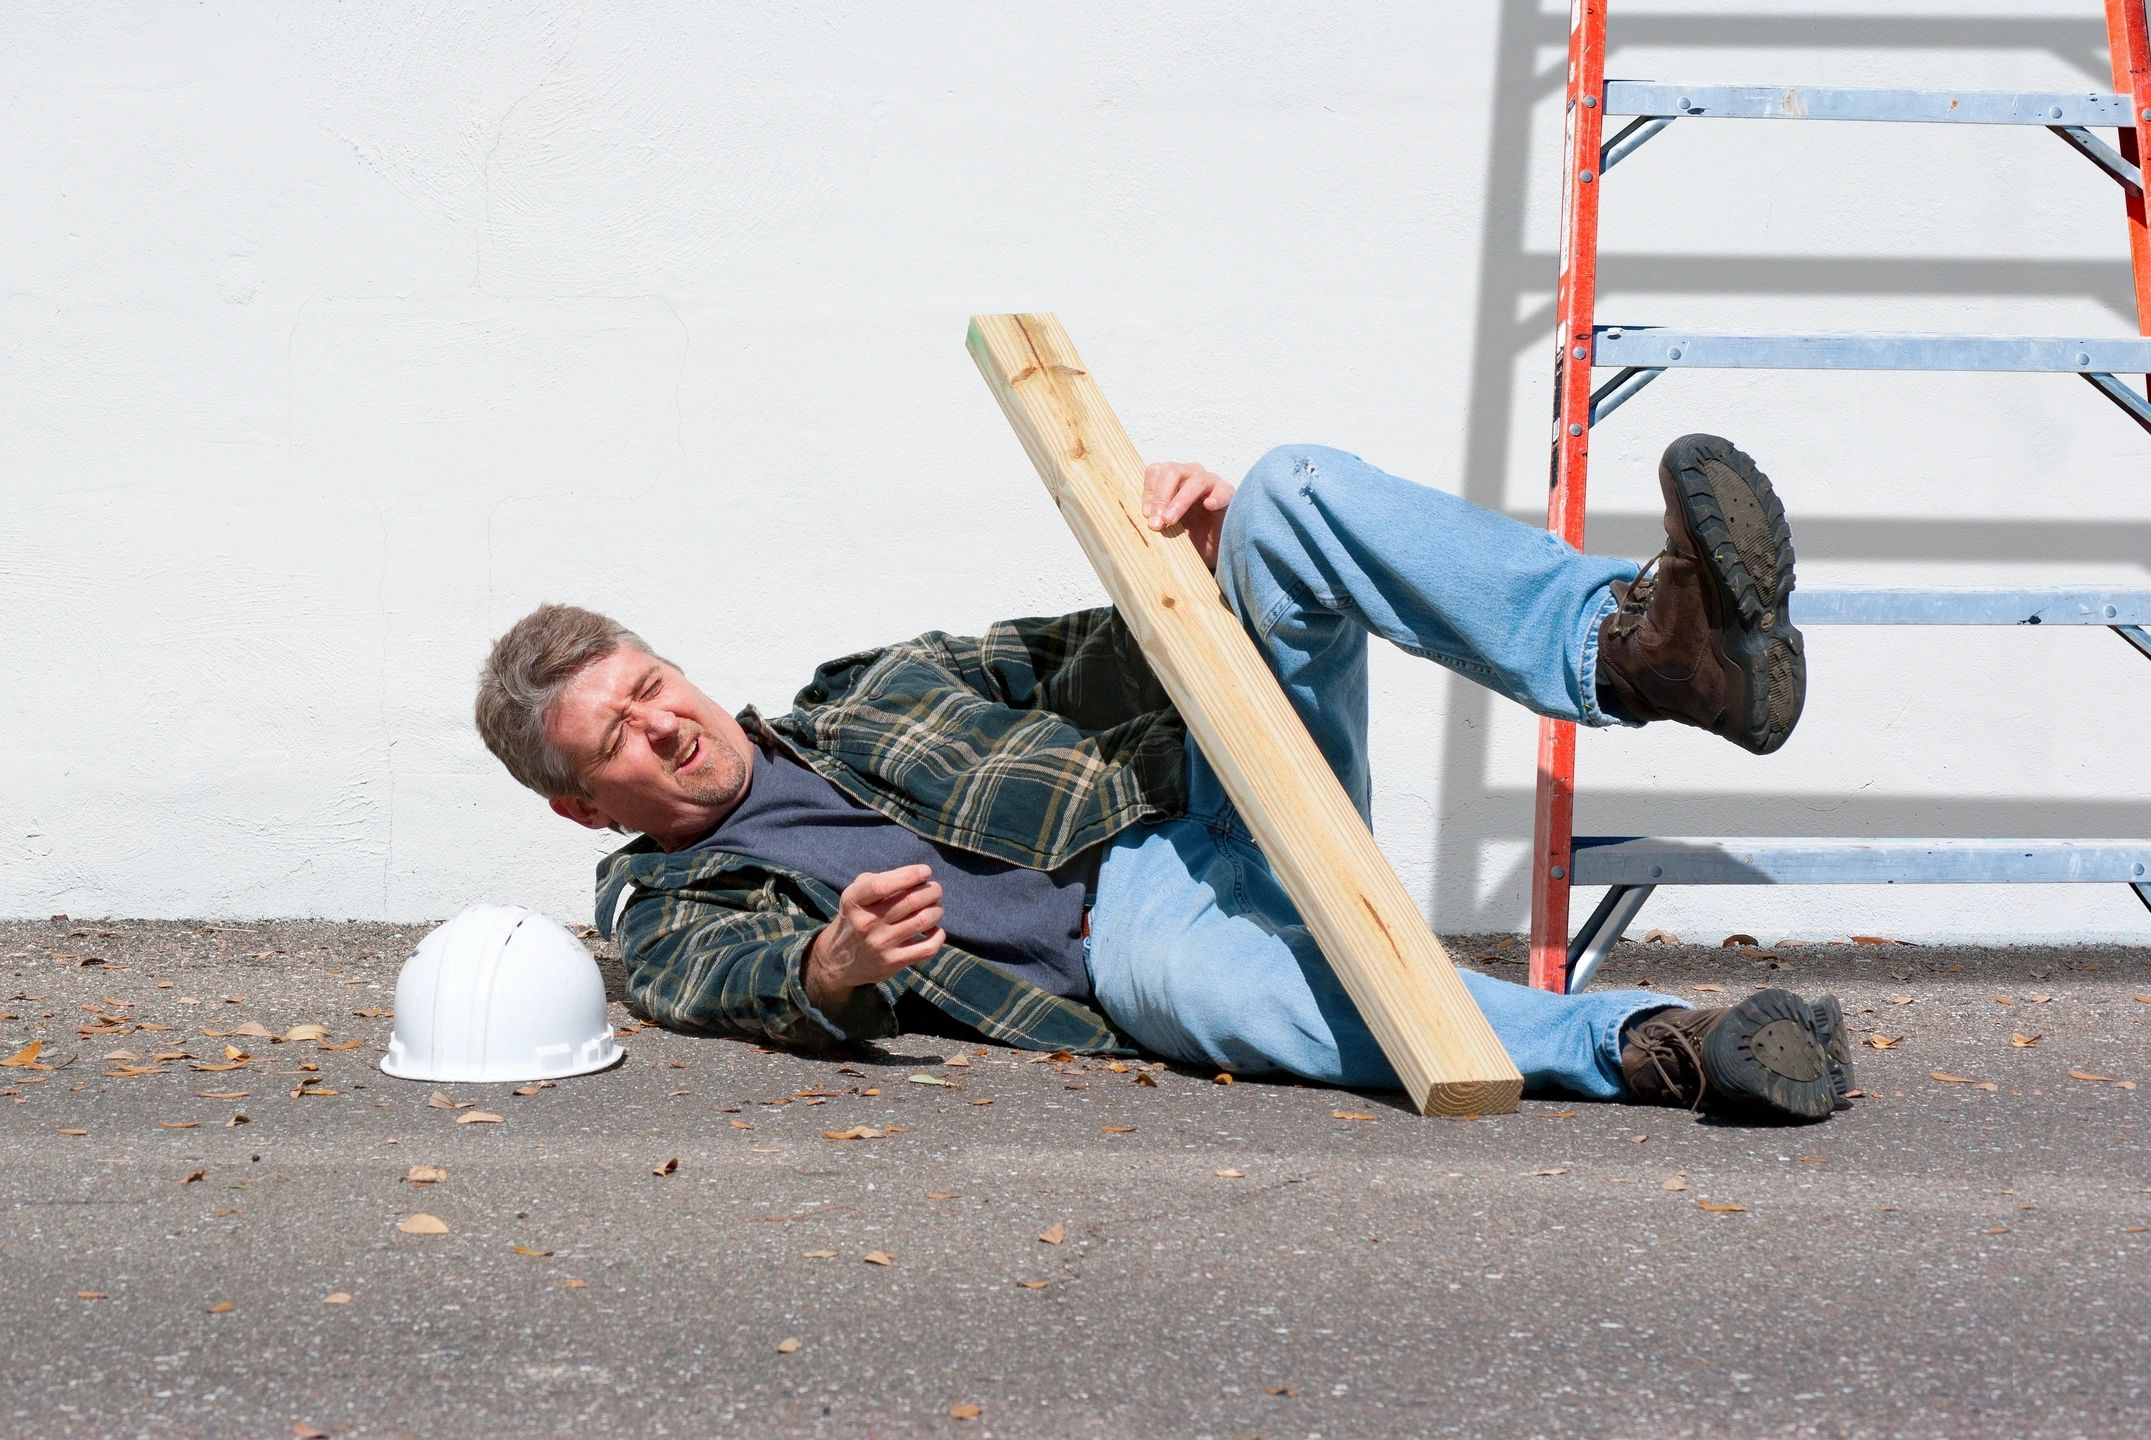 a working man in boots laying on the ground after falling from a ladder and getting injured